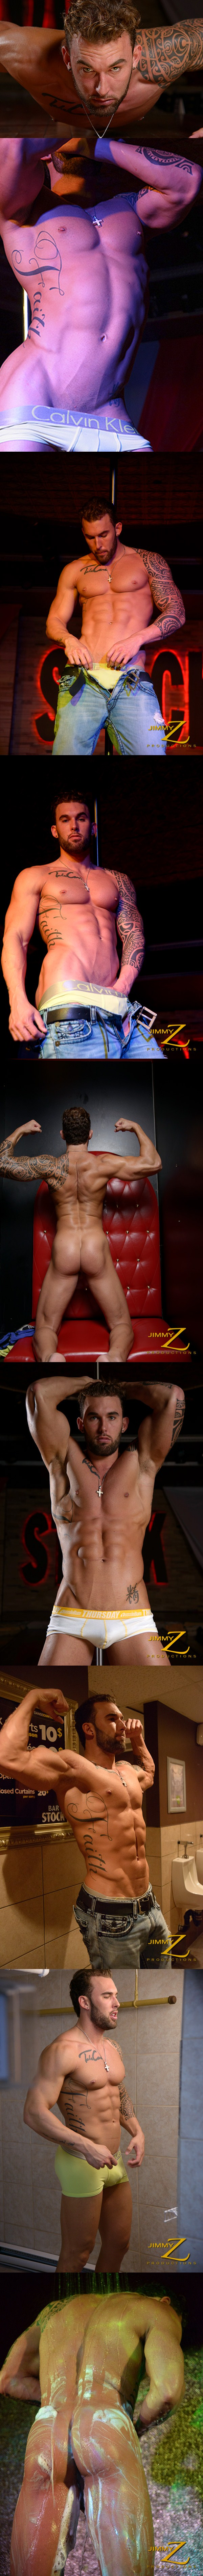 Handsome muscular tattooed stripper Randy Loren showtime at Jimmyzproductions 02